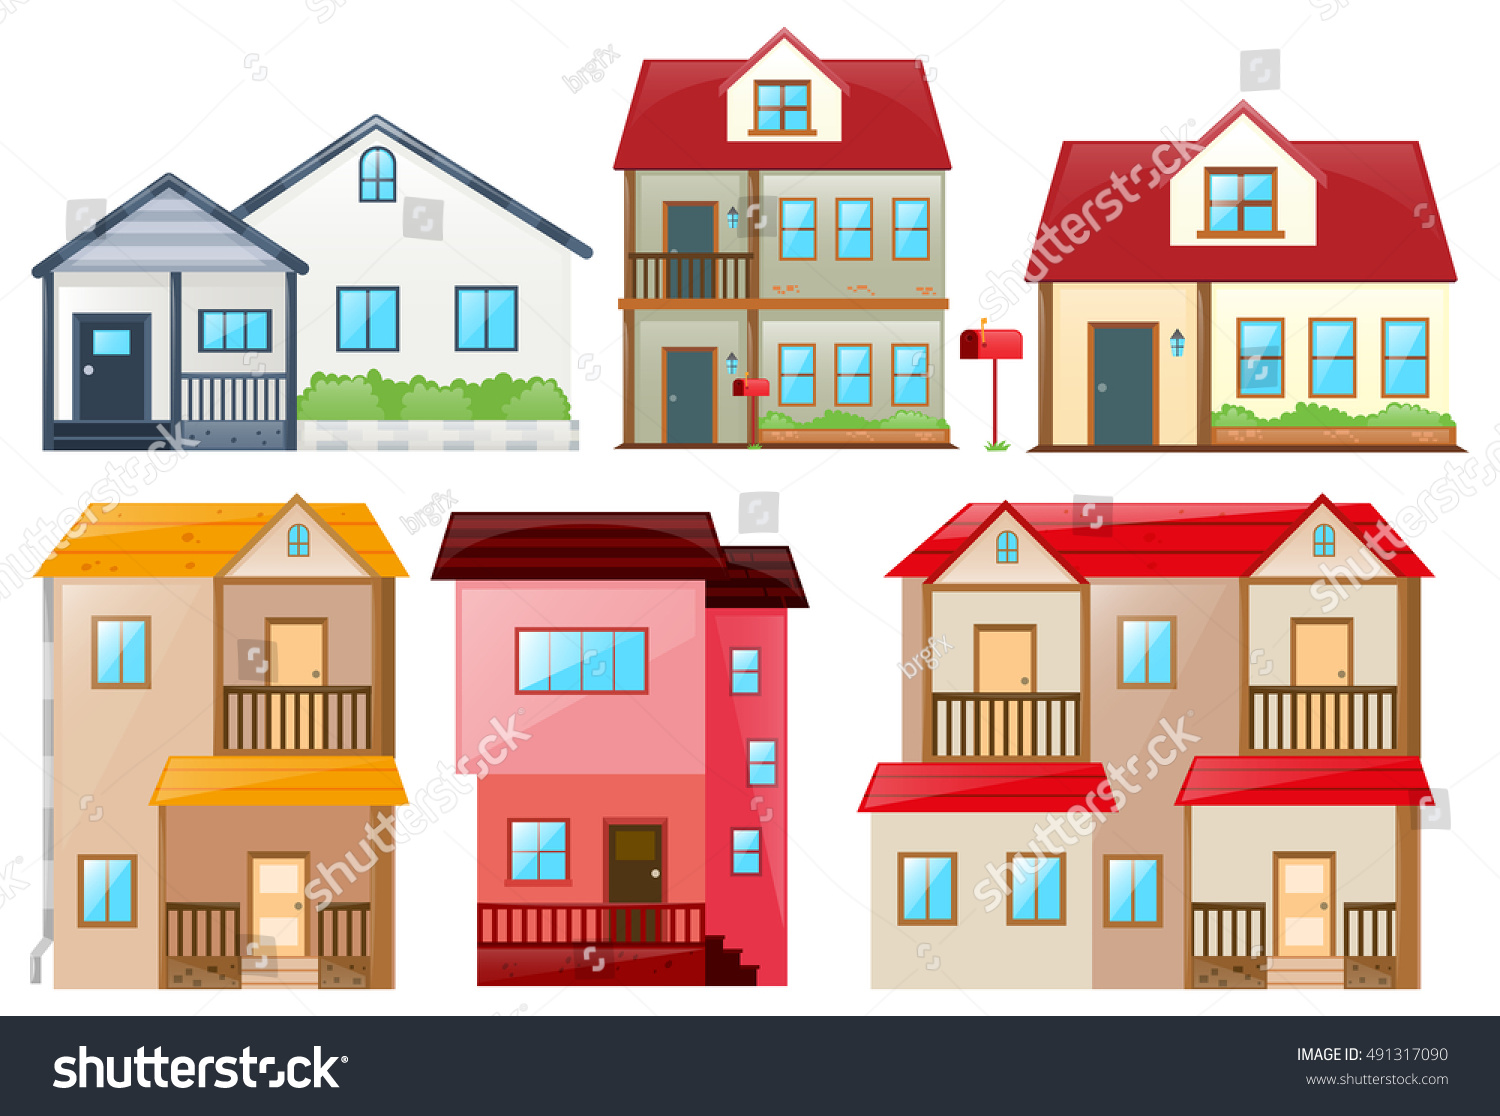 Fabulous Different Design Houses Illustration Stock Vector 491317090 Largest Home Design Picture Inspirations Pitcheantrous